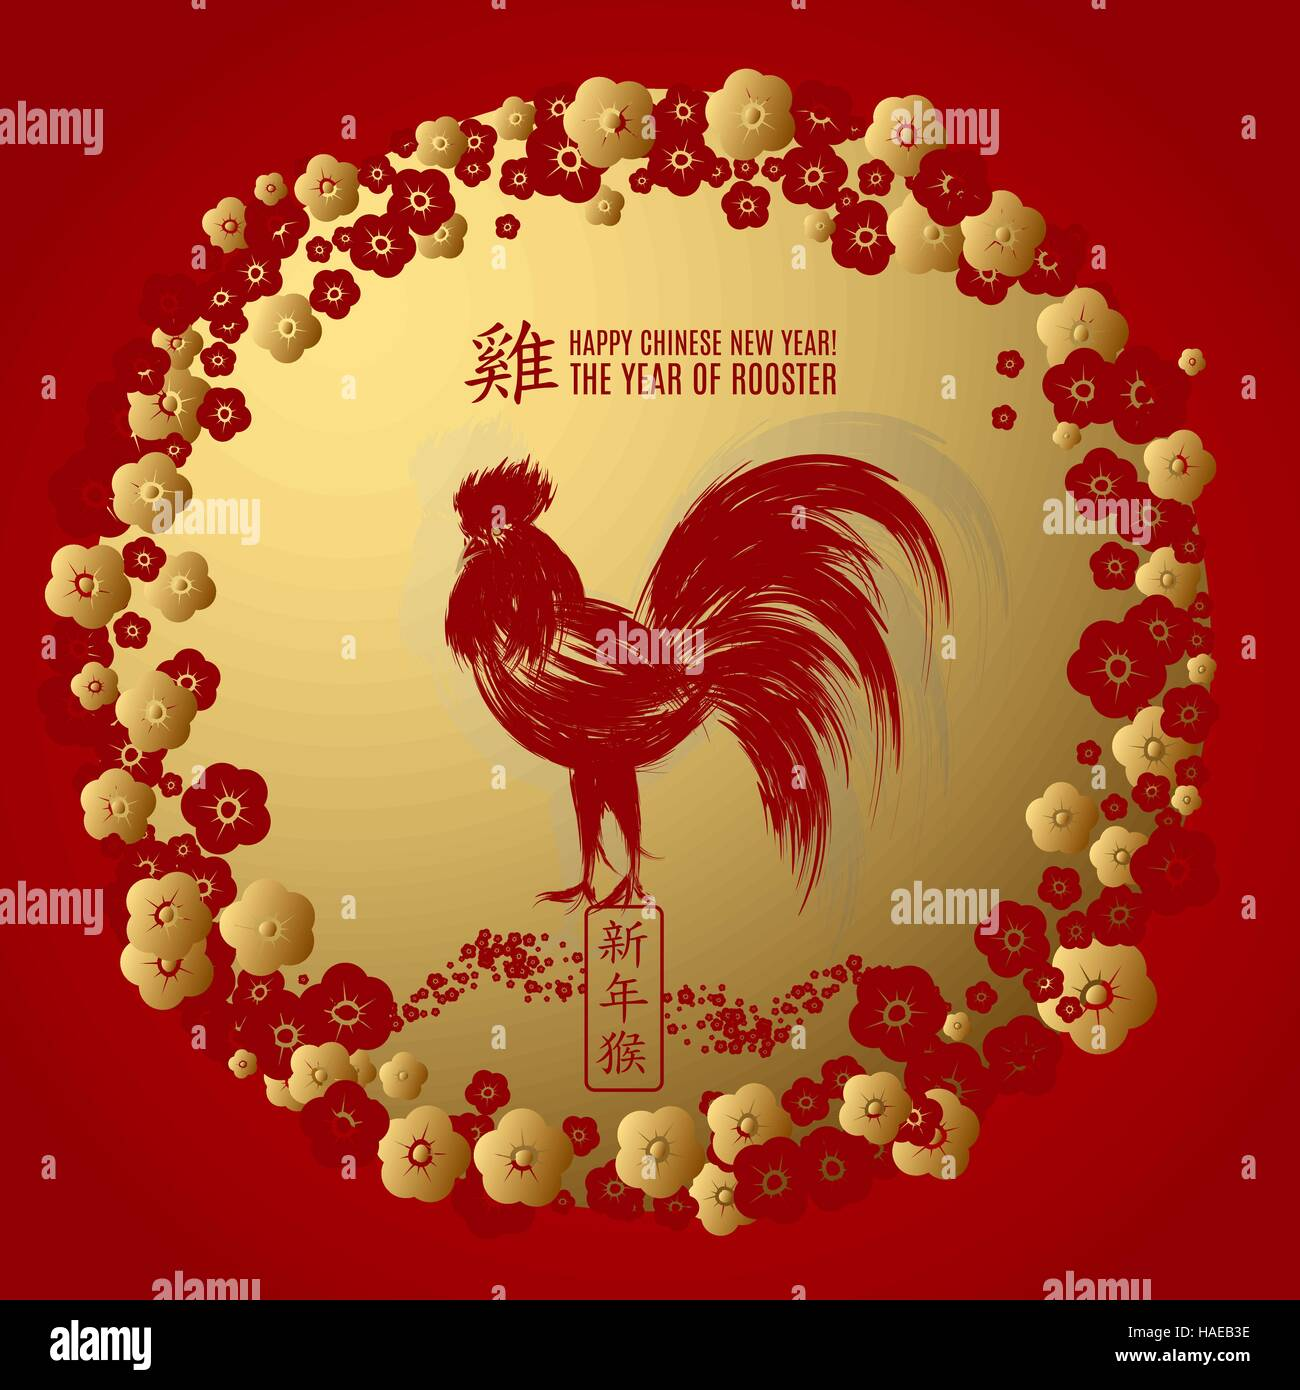 2017 chinese new year greeting card with round floral border and 2017 chinese new year greeting card with round floral border and rooster vector illustration red and gold traditionlal colors hieroglyph cock kristyandbryce Image collections